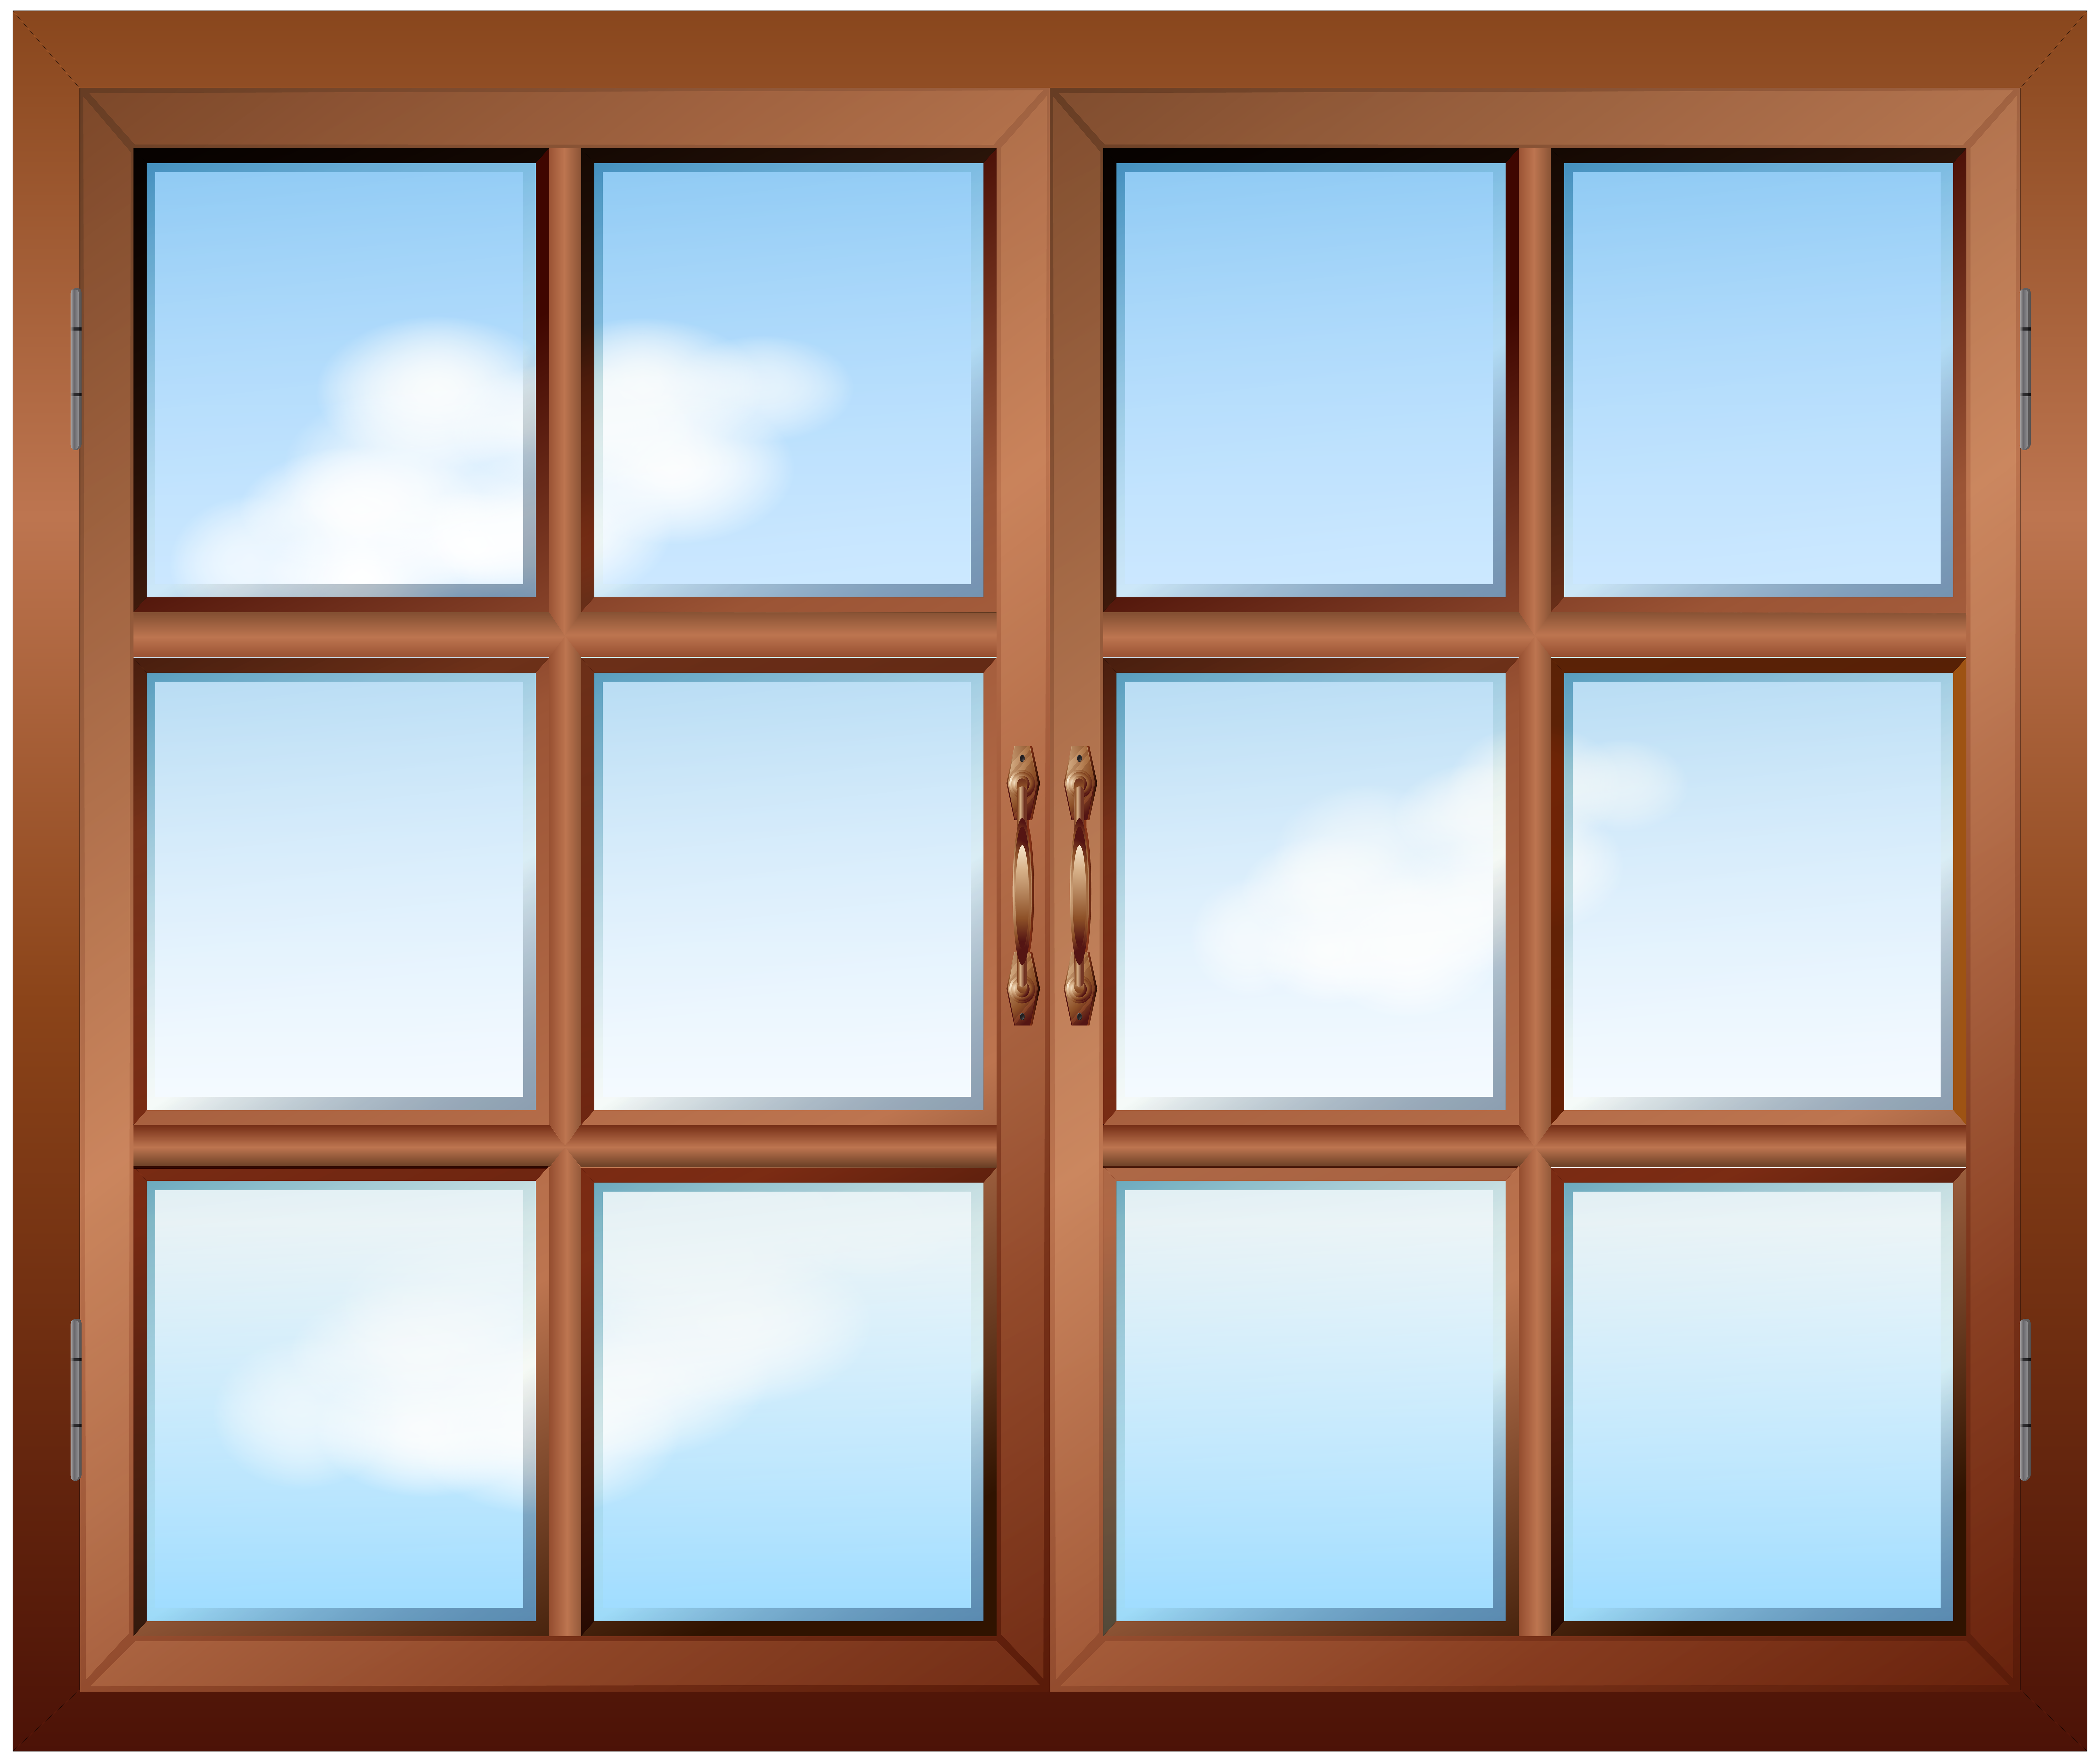 window clipart free download best window clipart on Microsoft Windows Clip Art Gallery windows clip art images